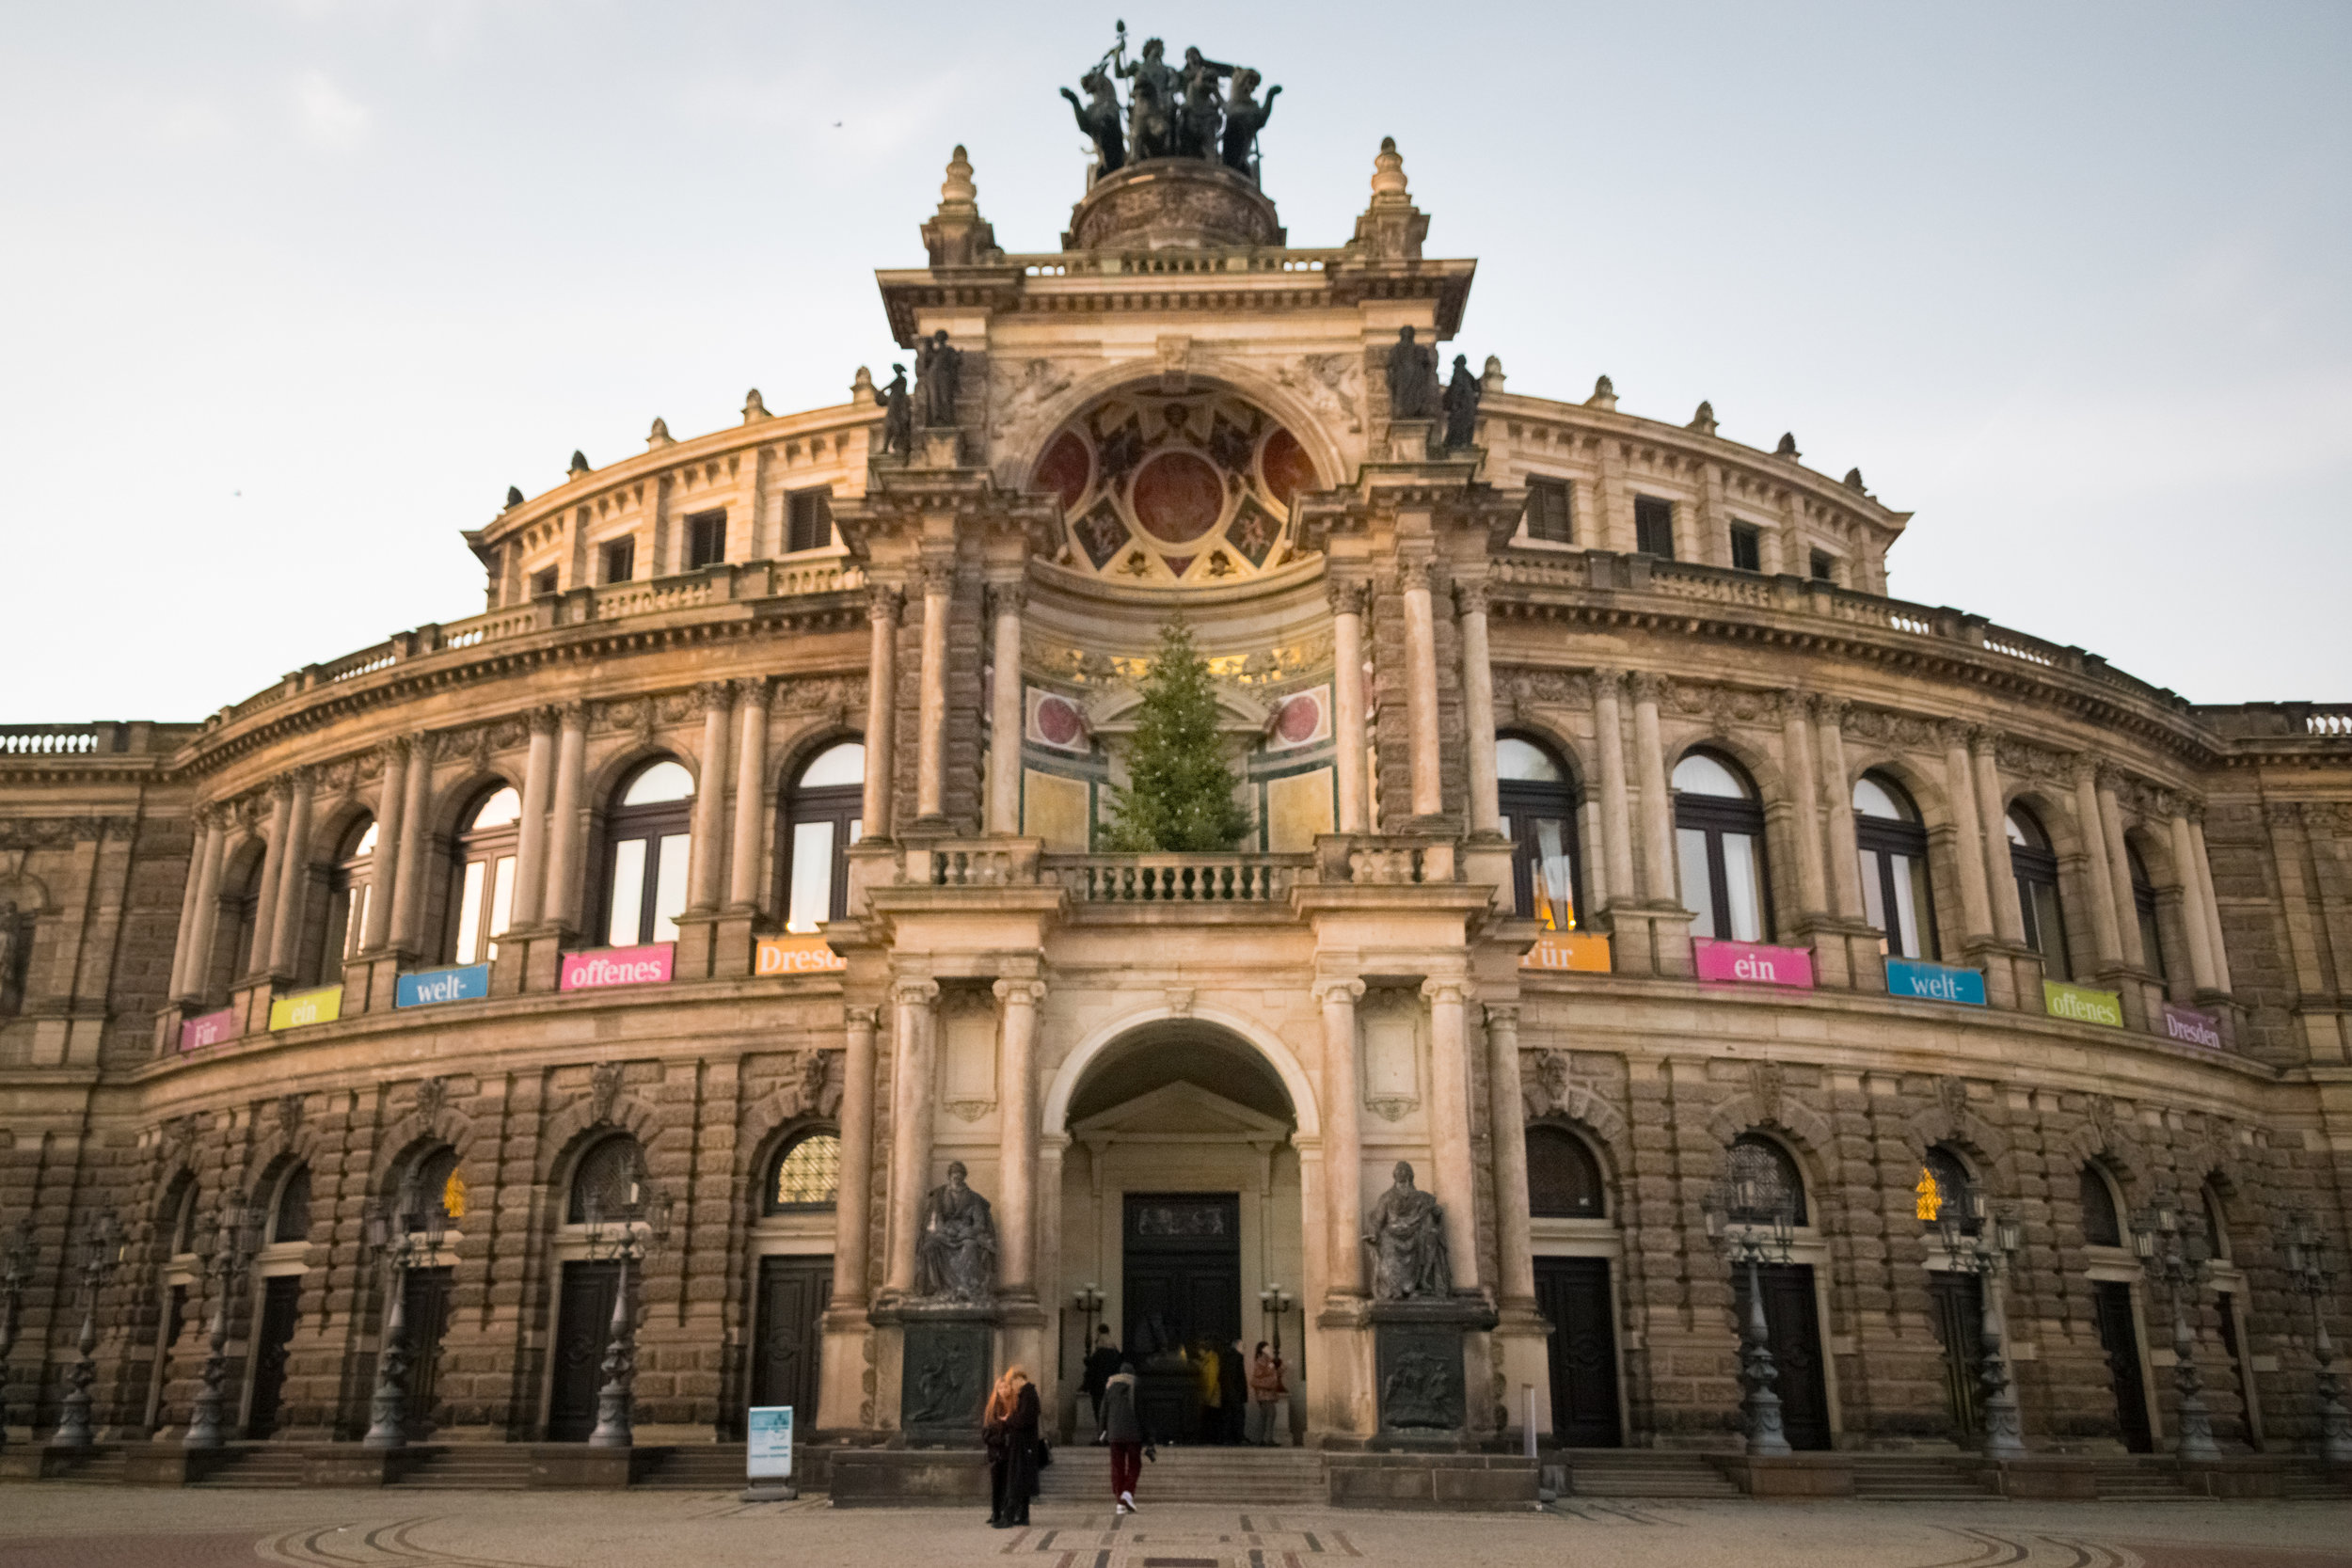 Semperoper, grand 19th-century opera house rebuilt during the Communist era